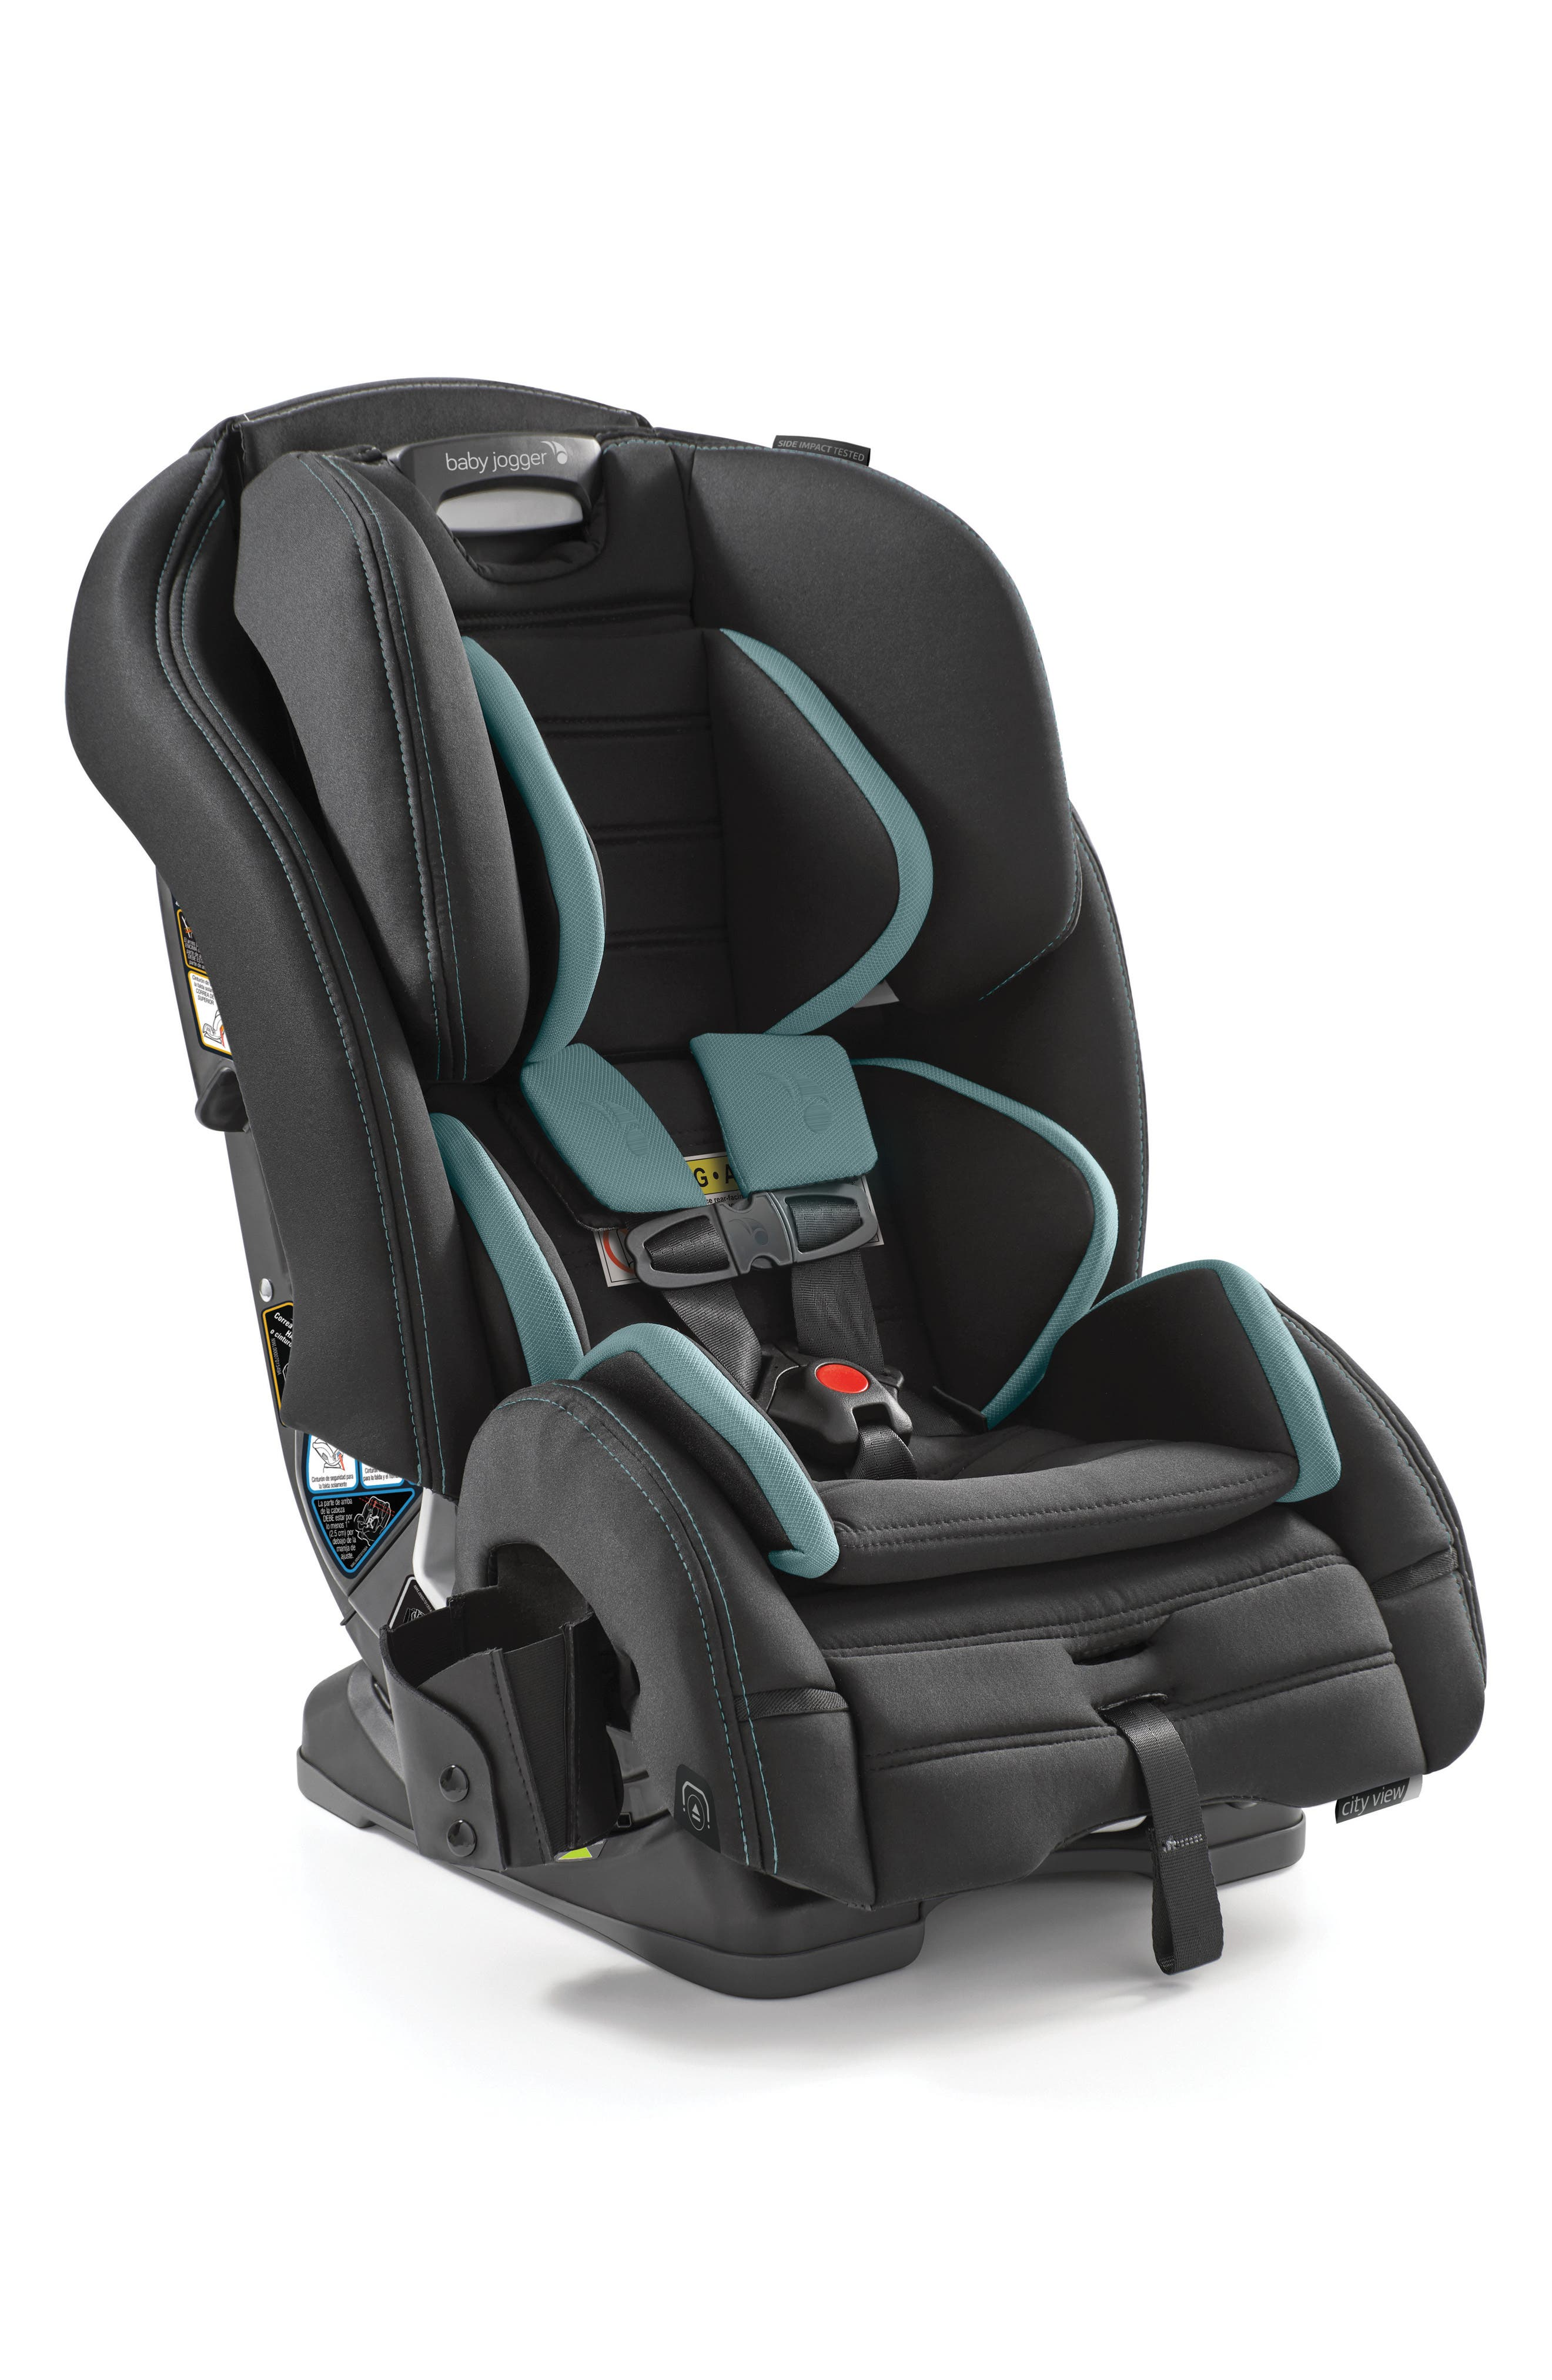 Alternate Image 1 Selected - Baby Jogger City View 2018 Convertible Car Seat